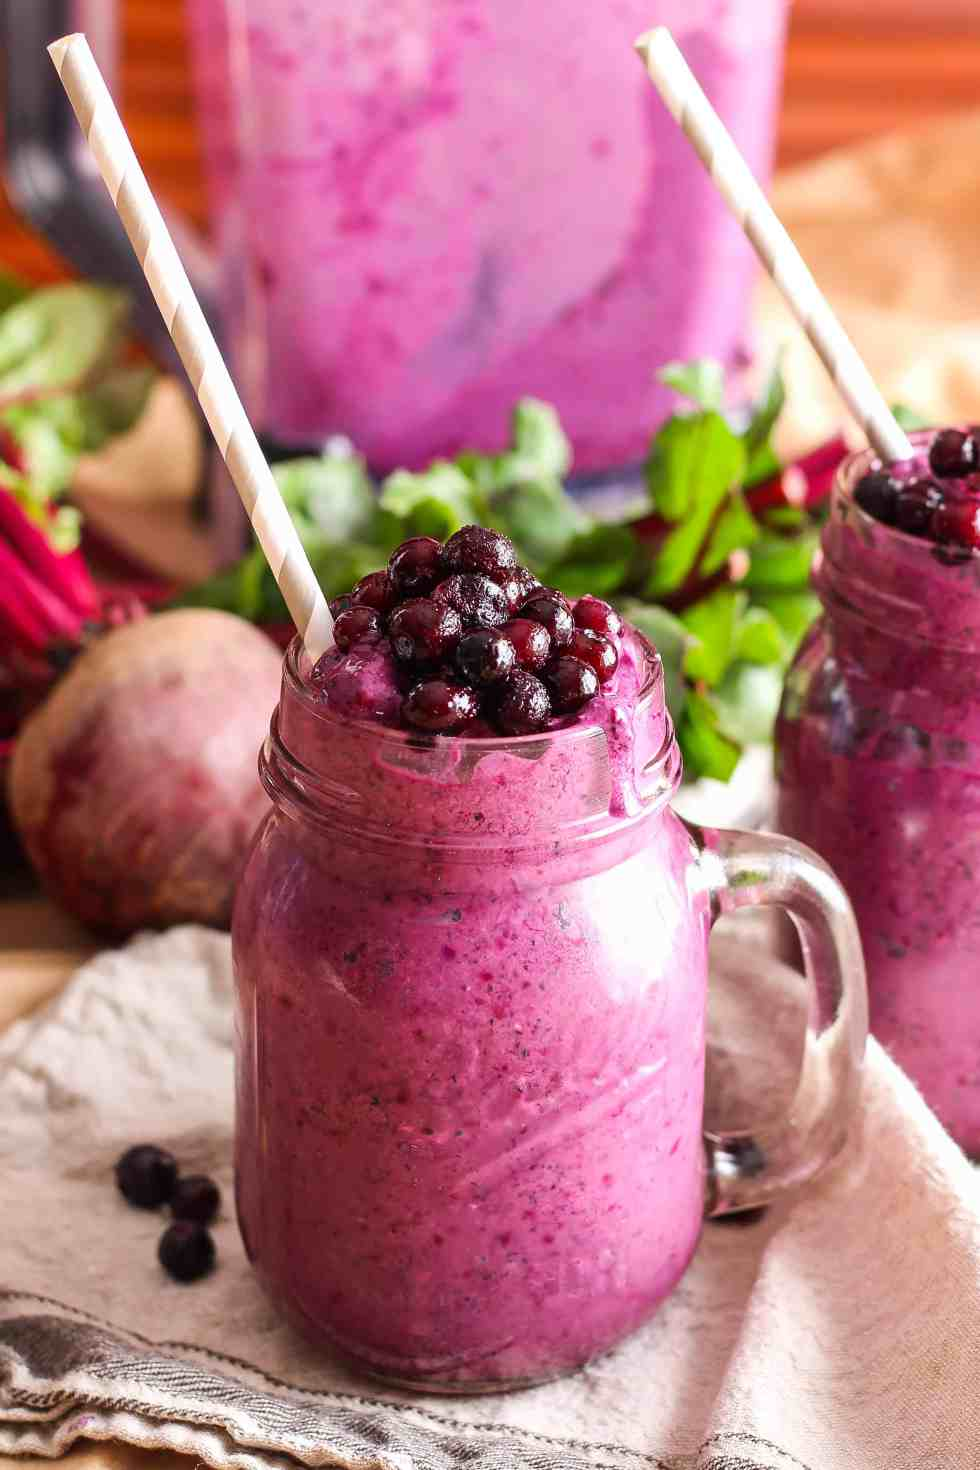 This healthy Wild Blueberry Beet Smoothie is a colorful and nutritious way to start your day with an extra serving of vegetables at breakfast! Dairy-free.